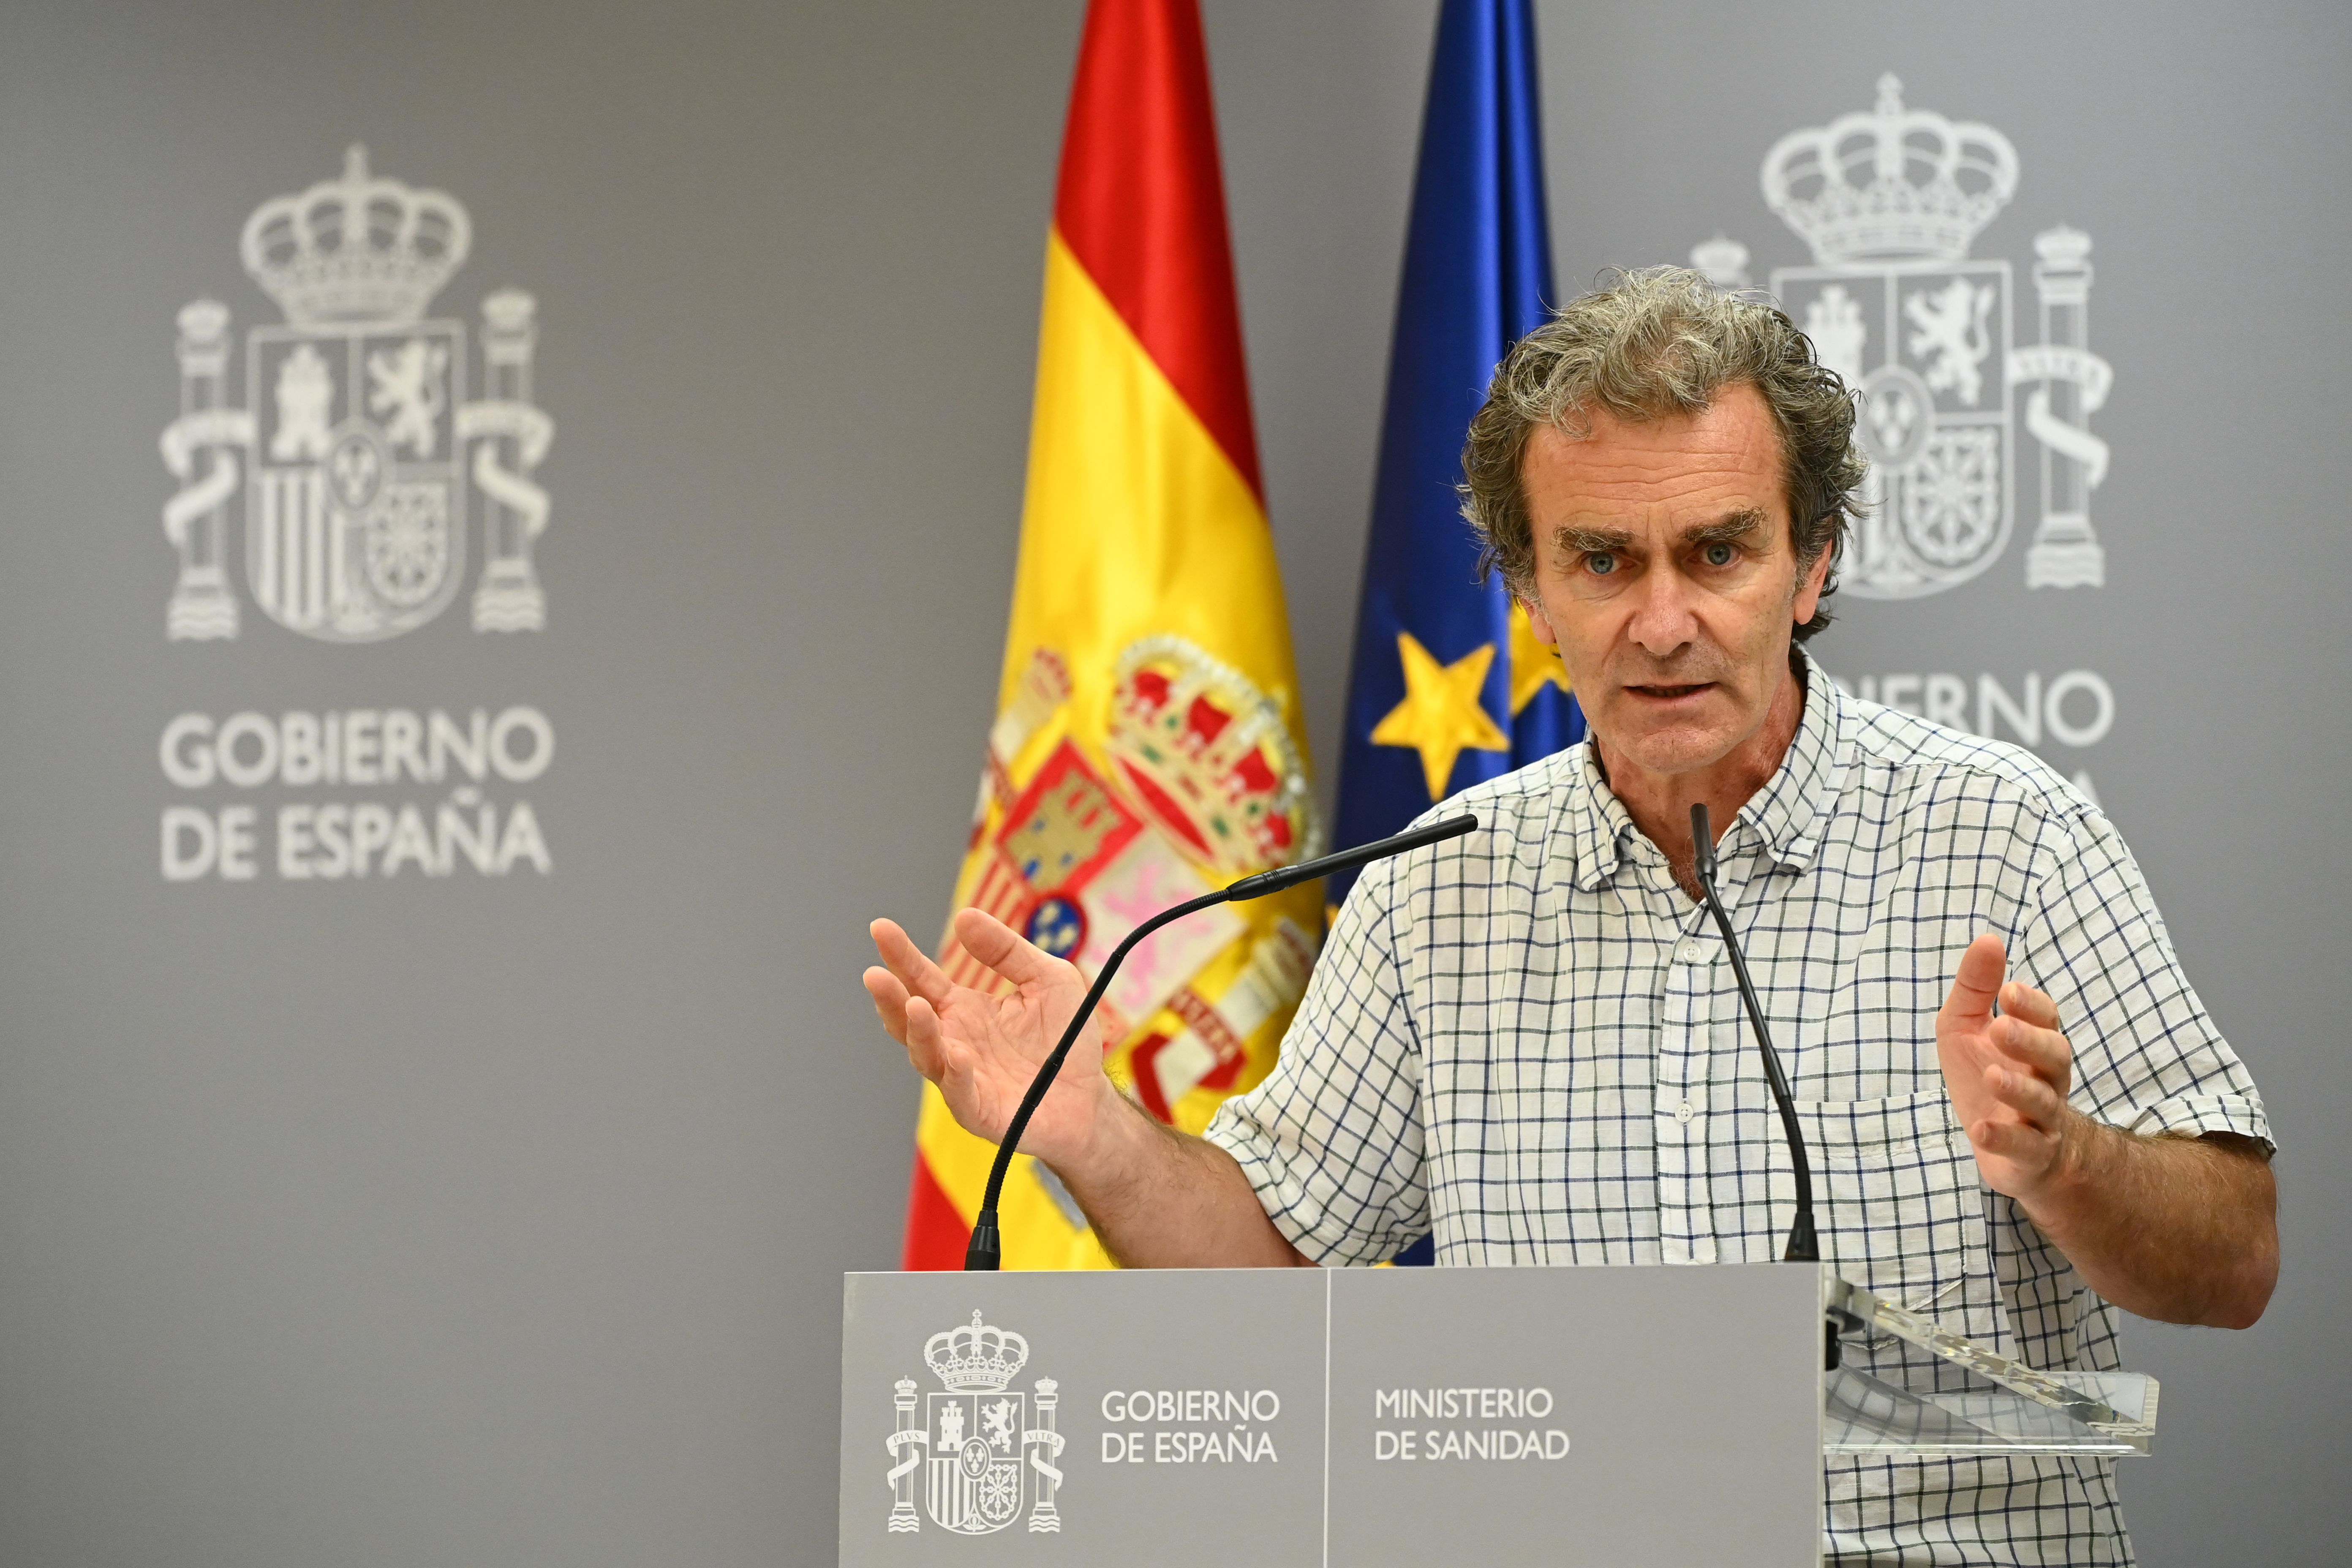 Dr. Fernando Simon, the Director of the Spanish Centre for Coordination of Health Alerts and Emergencies (CCAES), speaks at a press conference in Madrid on June 25.